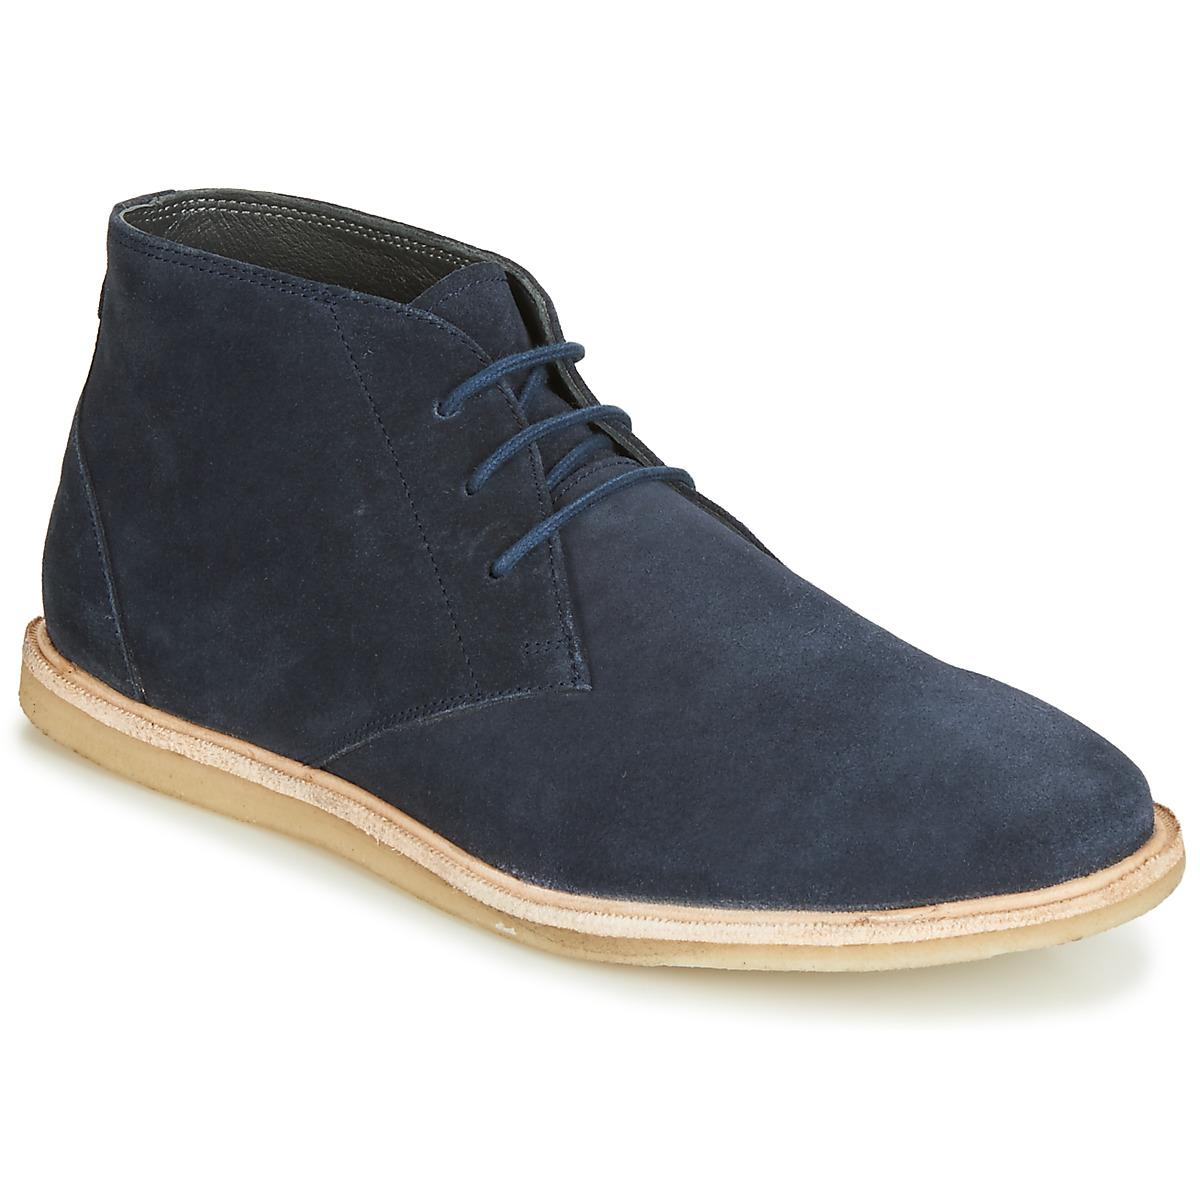 eb6879a894a Frank Wright Baxter Men's Mid Boots In Blue in Blue for Men - Lyst